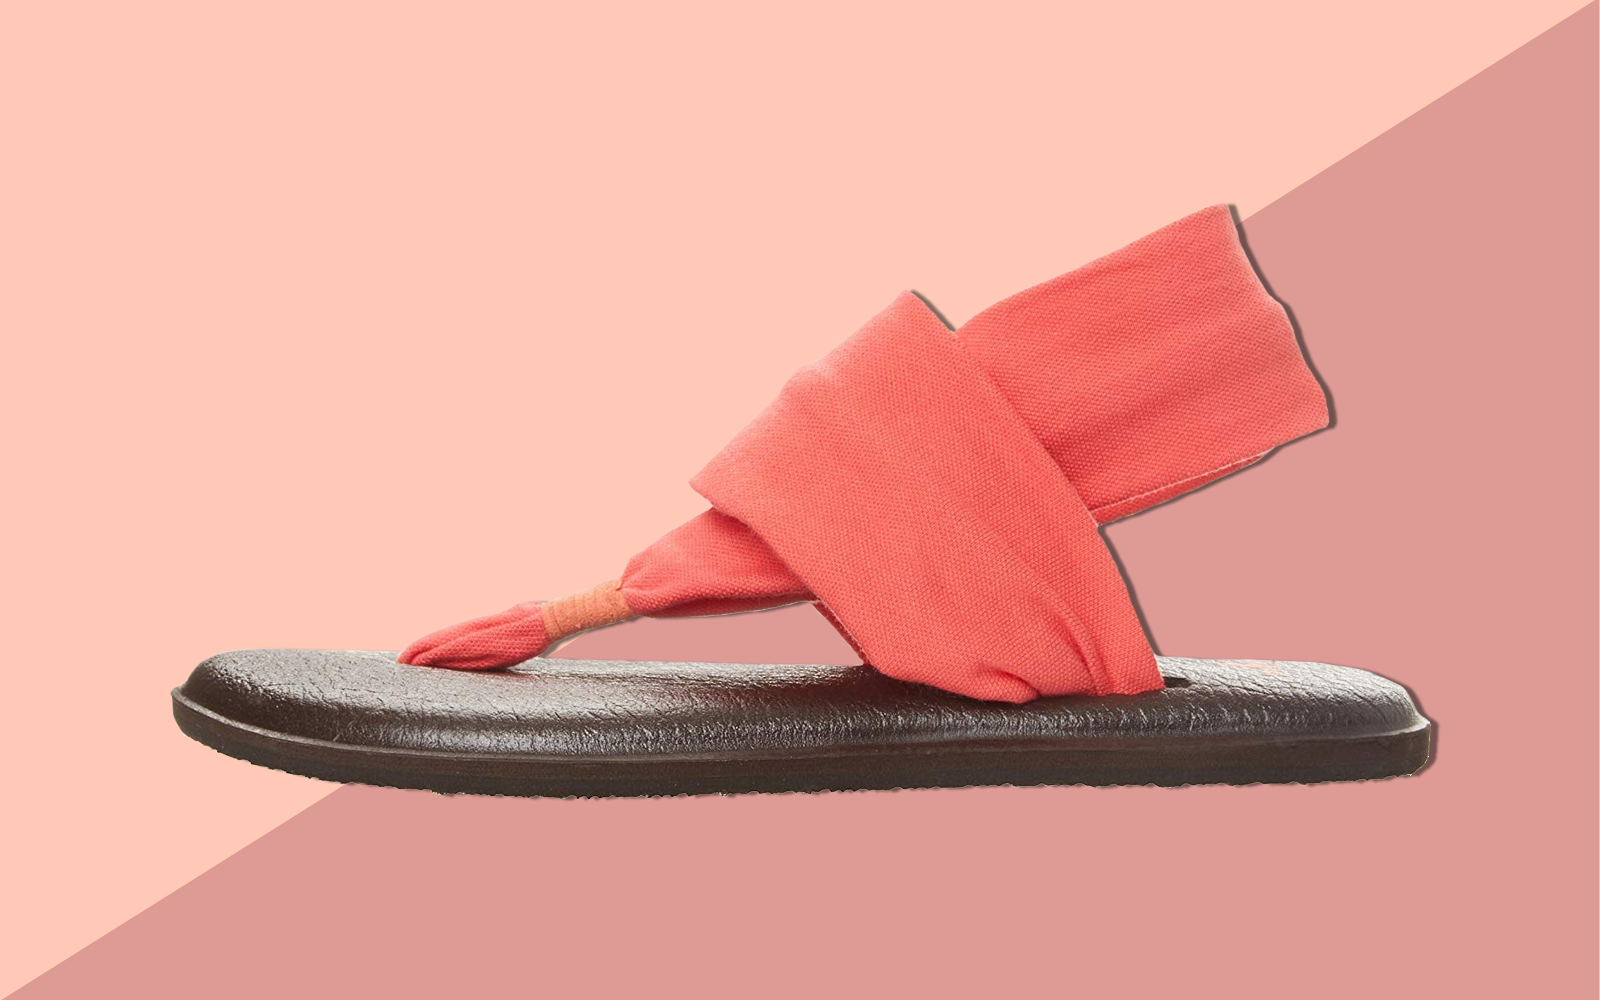 These Sandals Are so Comfortable, They Have over 7,000 5-star Amazon Reviews